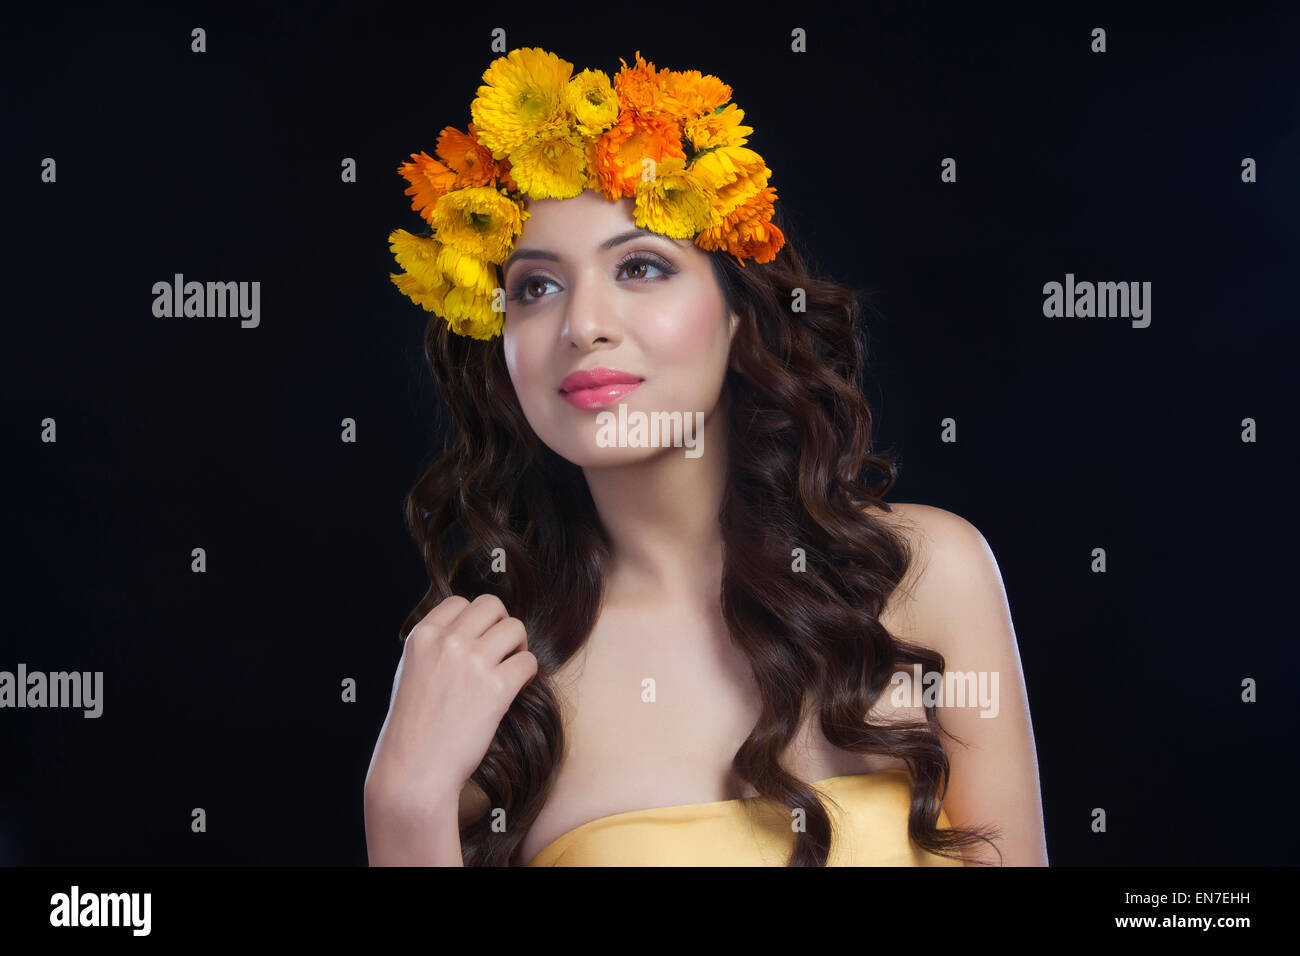 Portrait of a beautiful woman with flowers in her hair stock photo portrait of a beautiful woman with flowers in her hair dhlflorist Gallery